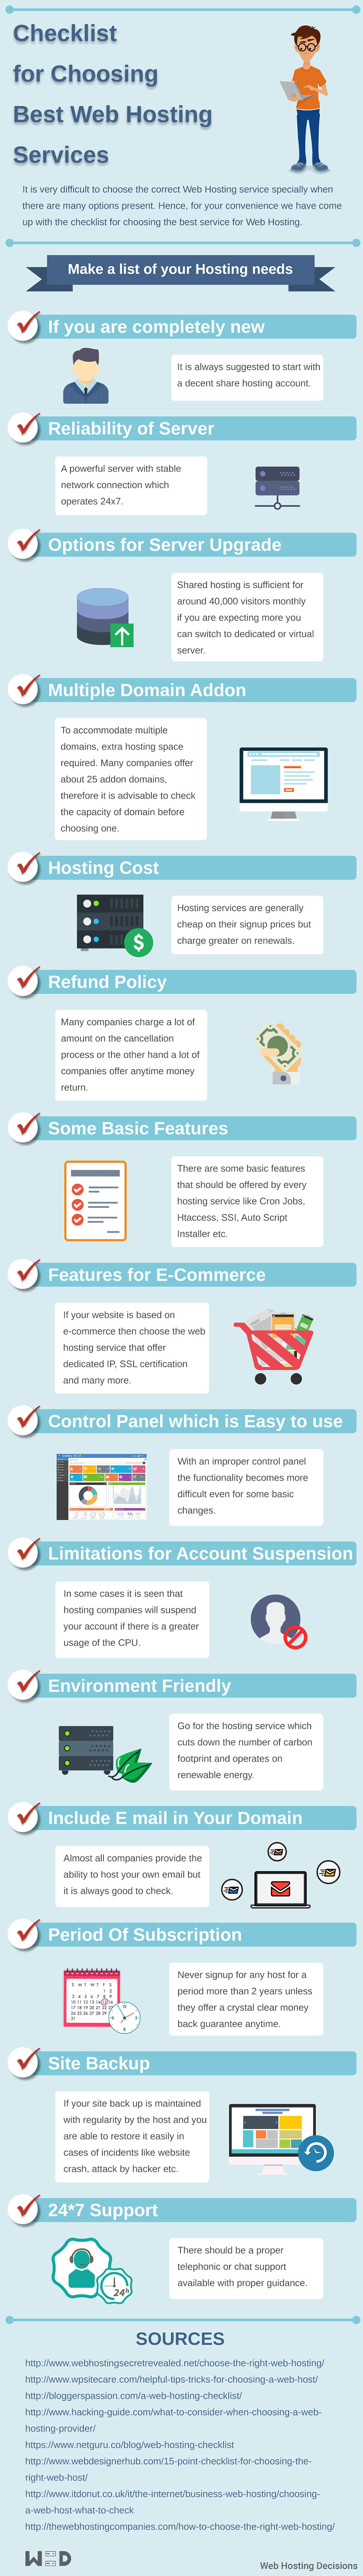 Checklist for Choosing Best Web Hosting Services (Infographic)